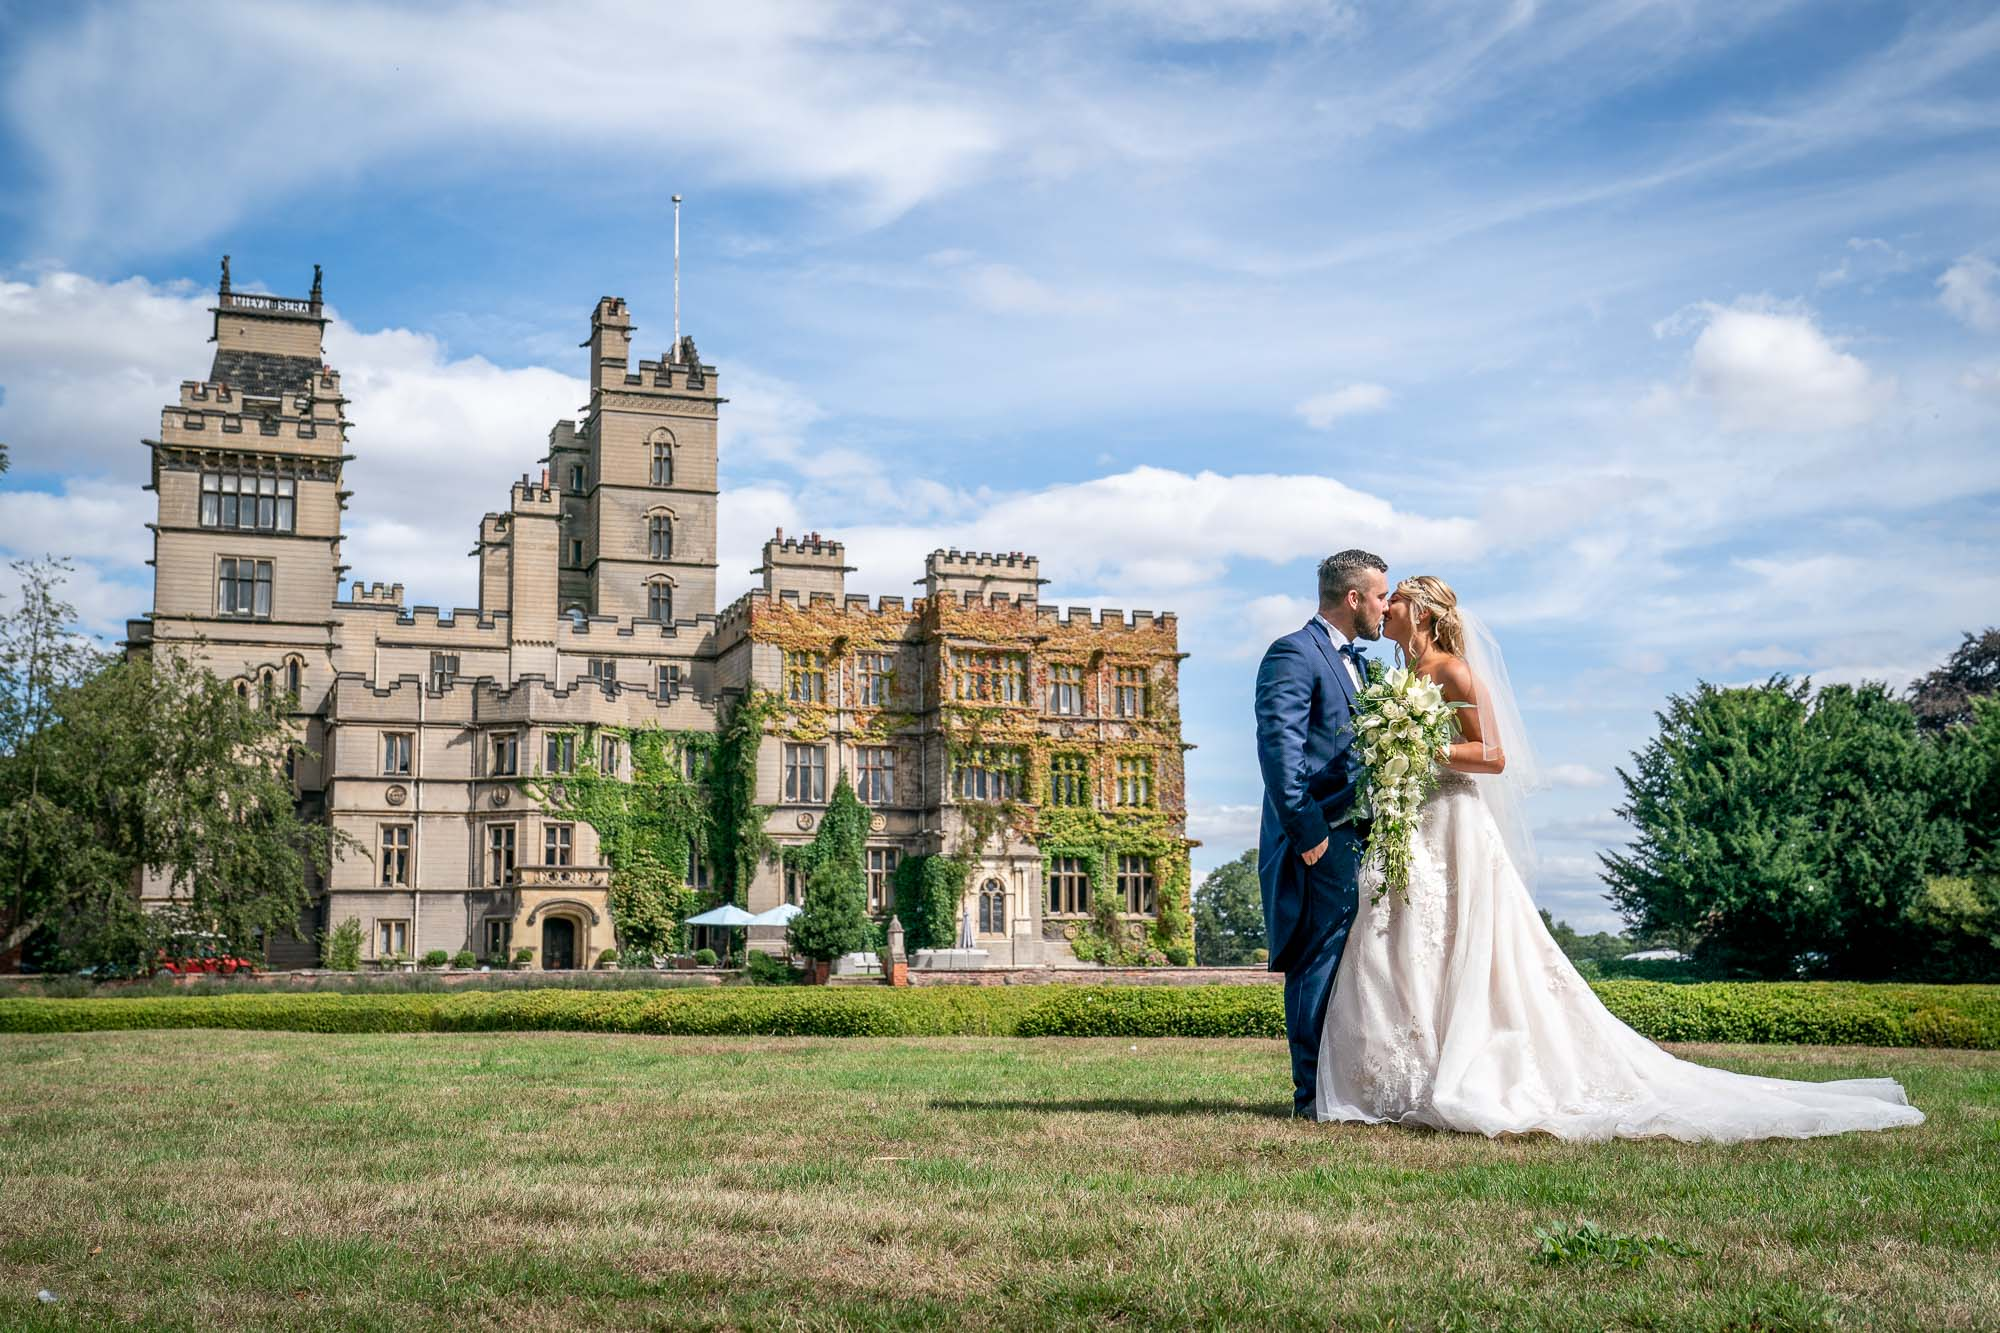 Bride and groom wedding photography at Carlton Towers